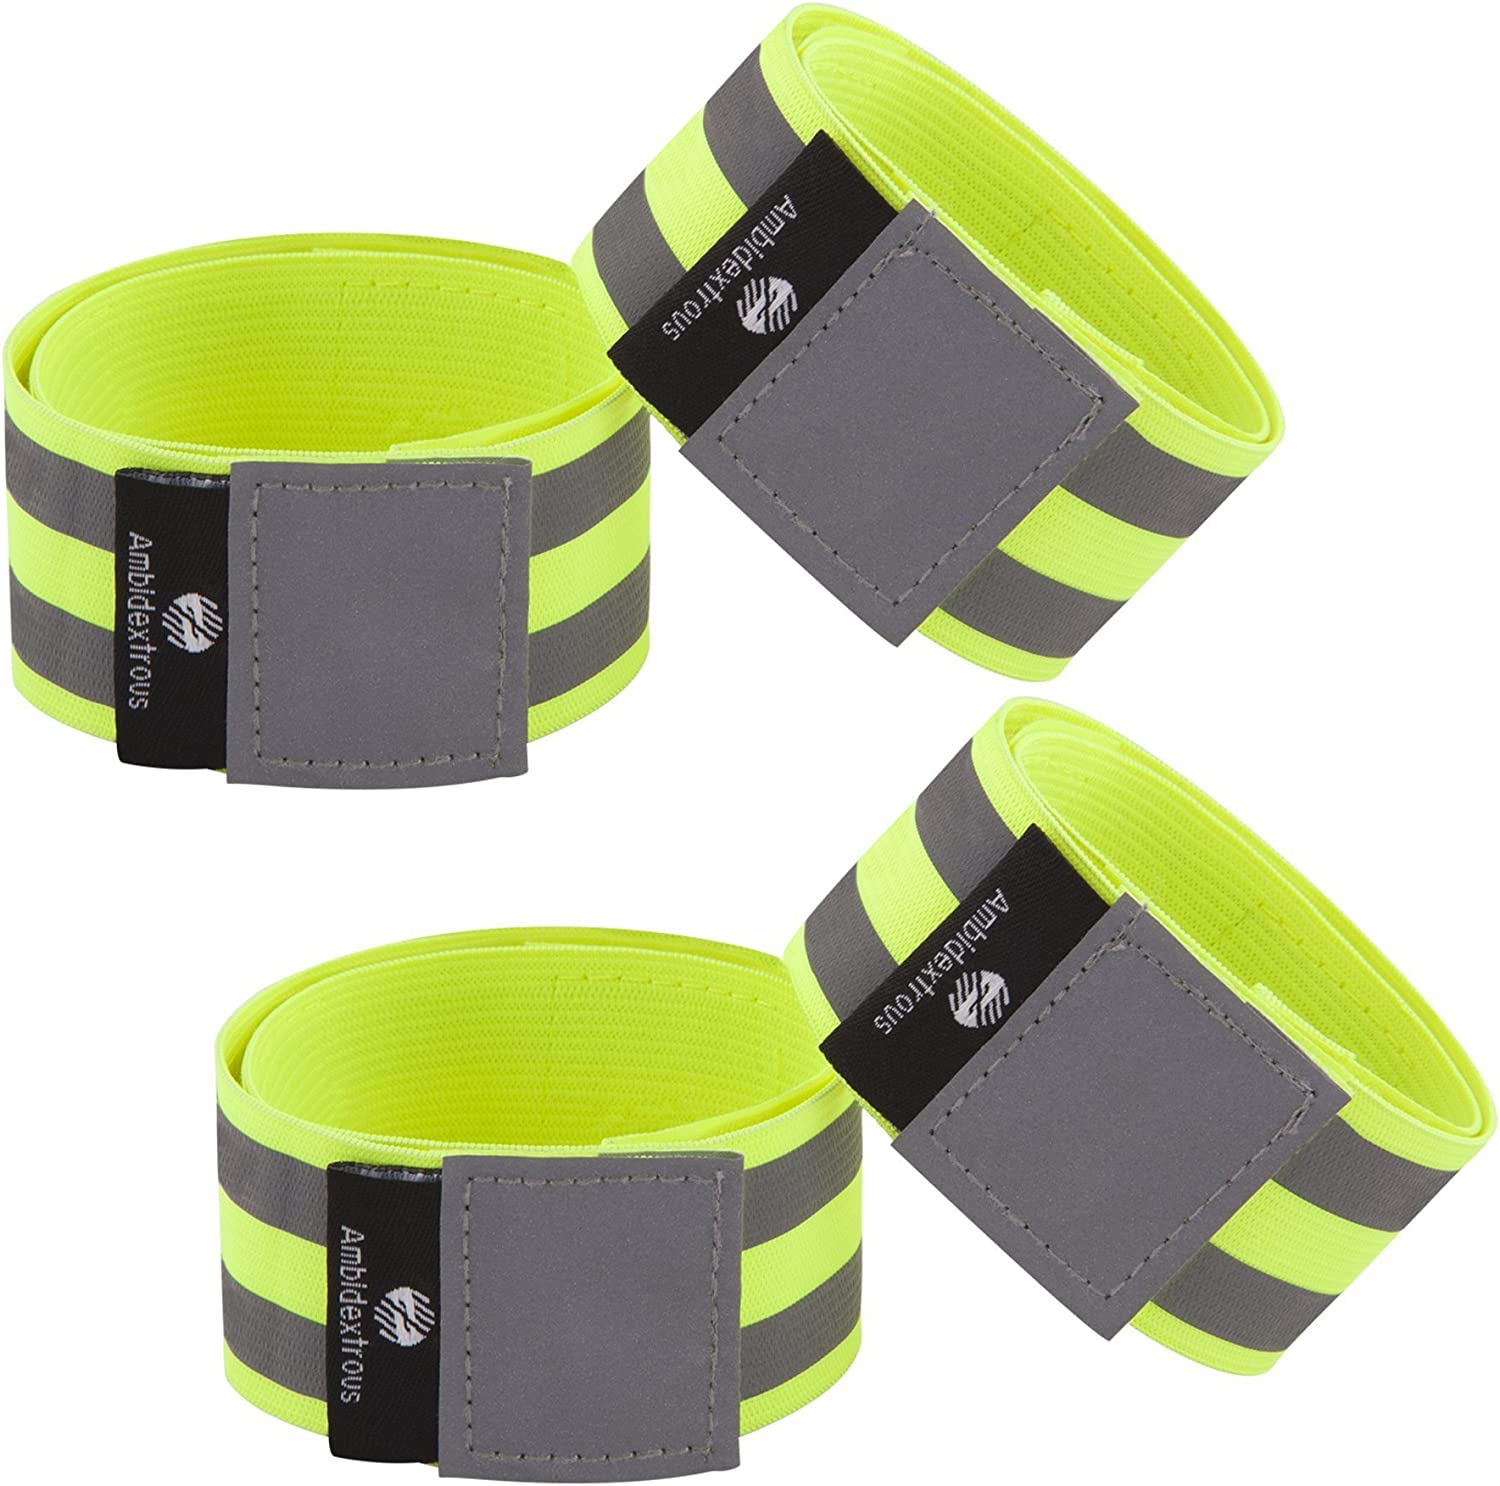 Reflective Bands for Men and Women   Reflectors for Runners, Cycling, Walking   Set of 4 Reflective Ankle Bands, Armbands, Wristbands   Reflector Tape Providing High Visibility Safety Apparel : Sports & Outdoors